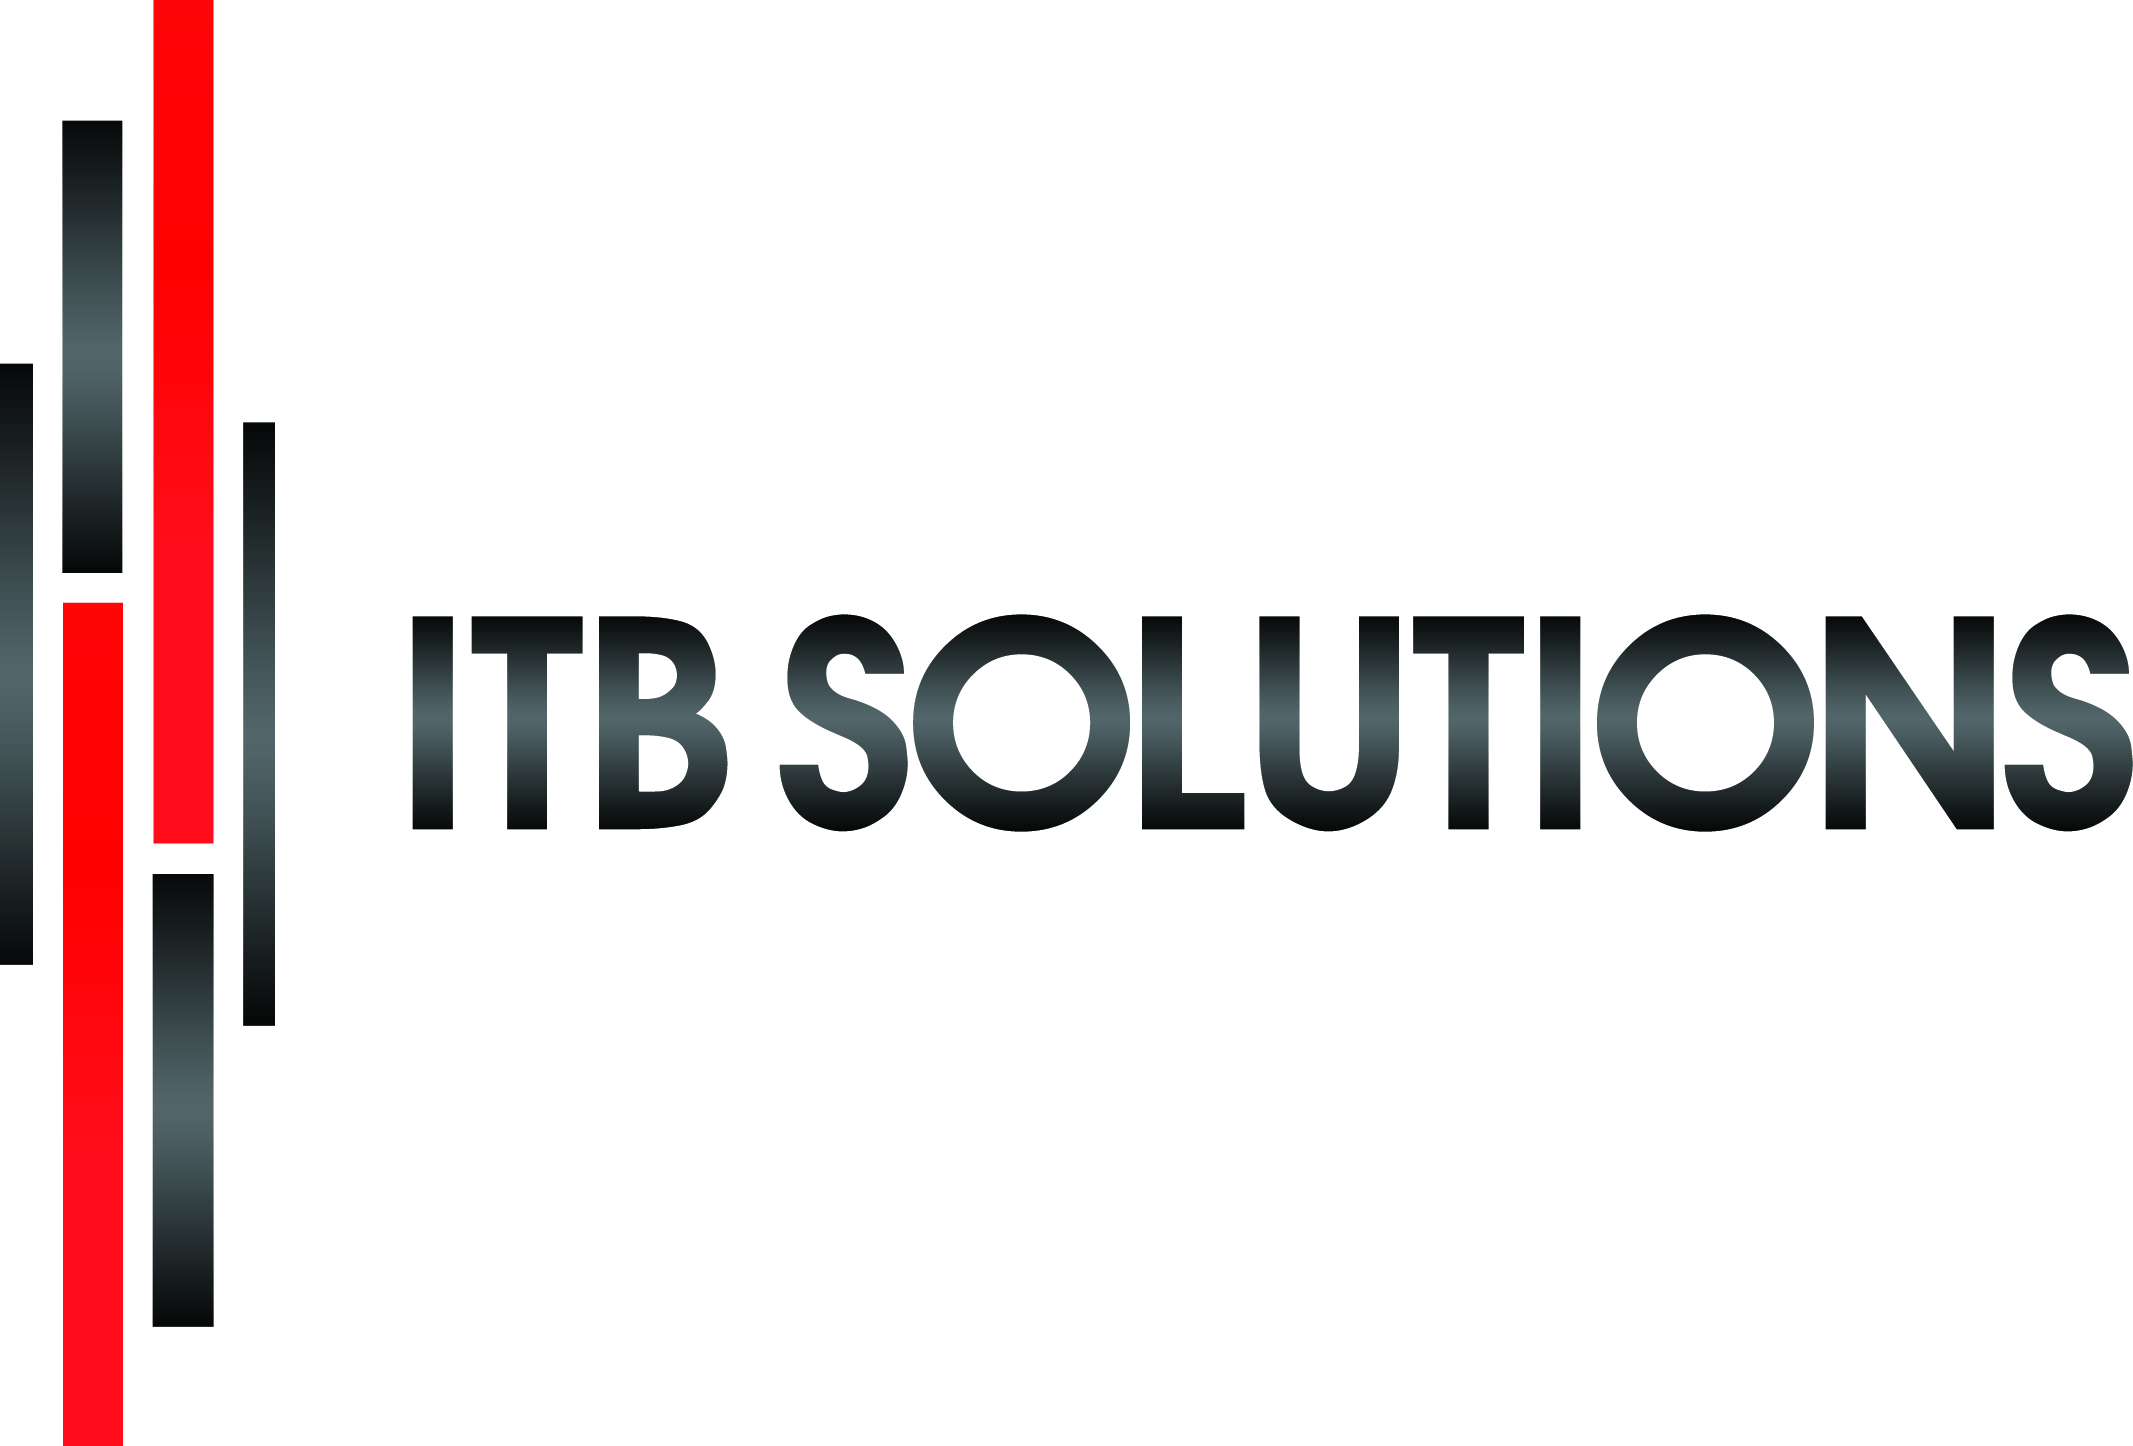 ITB Solutions OÜ